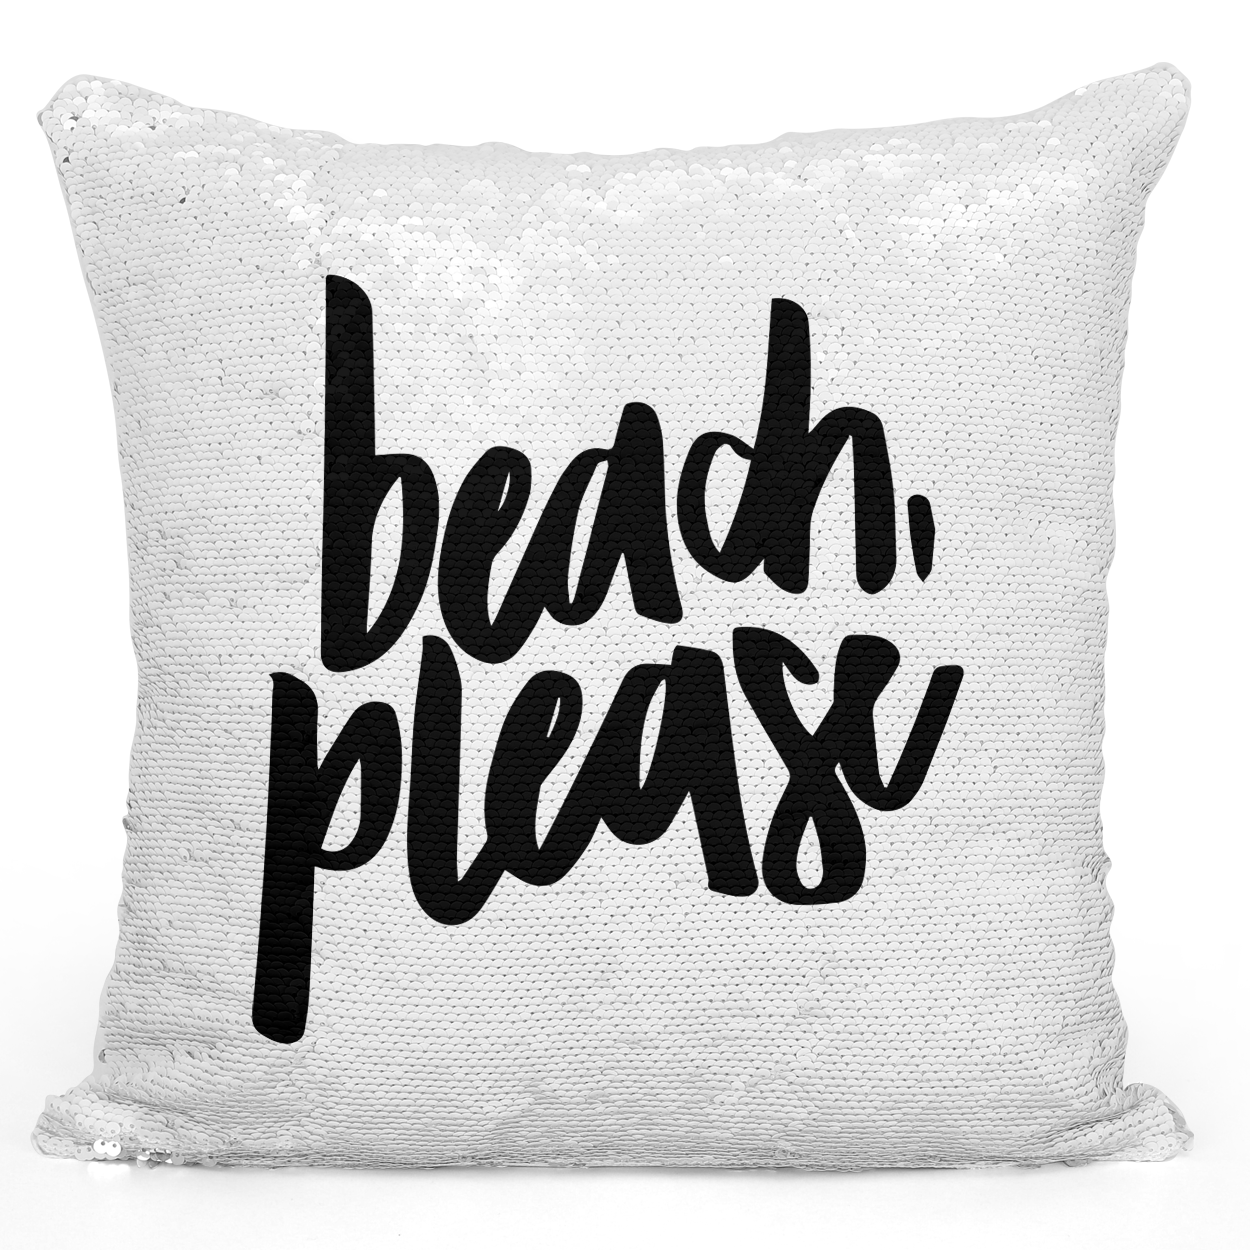 Sequin Pillow Magic Mermaid Throw Pillow Beach Please Black And White Beach Summer Pillow - Durable White 16 x 16 inch Square Livingroom Sofa Couch Pillow Loud Universe